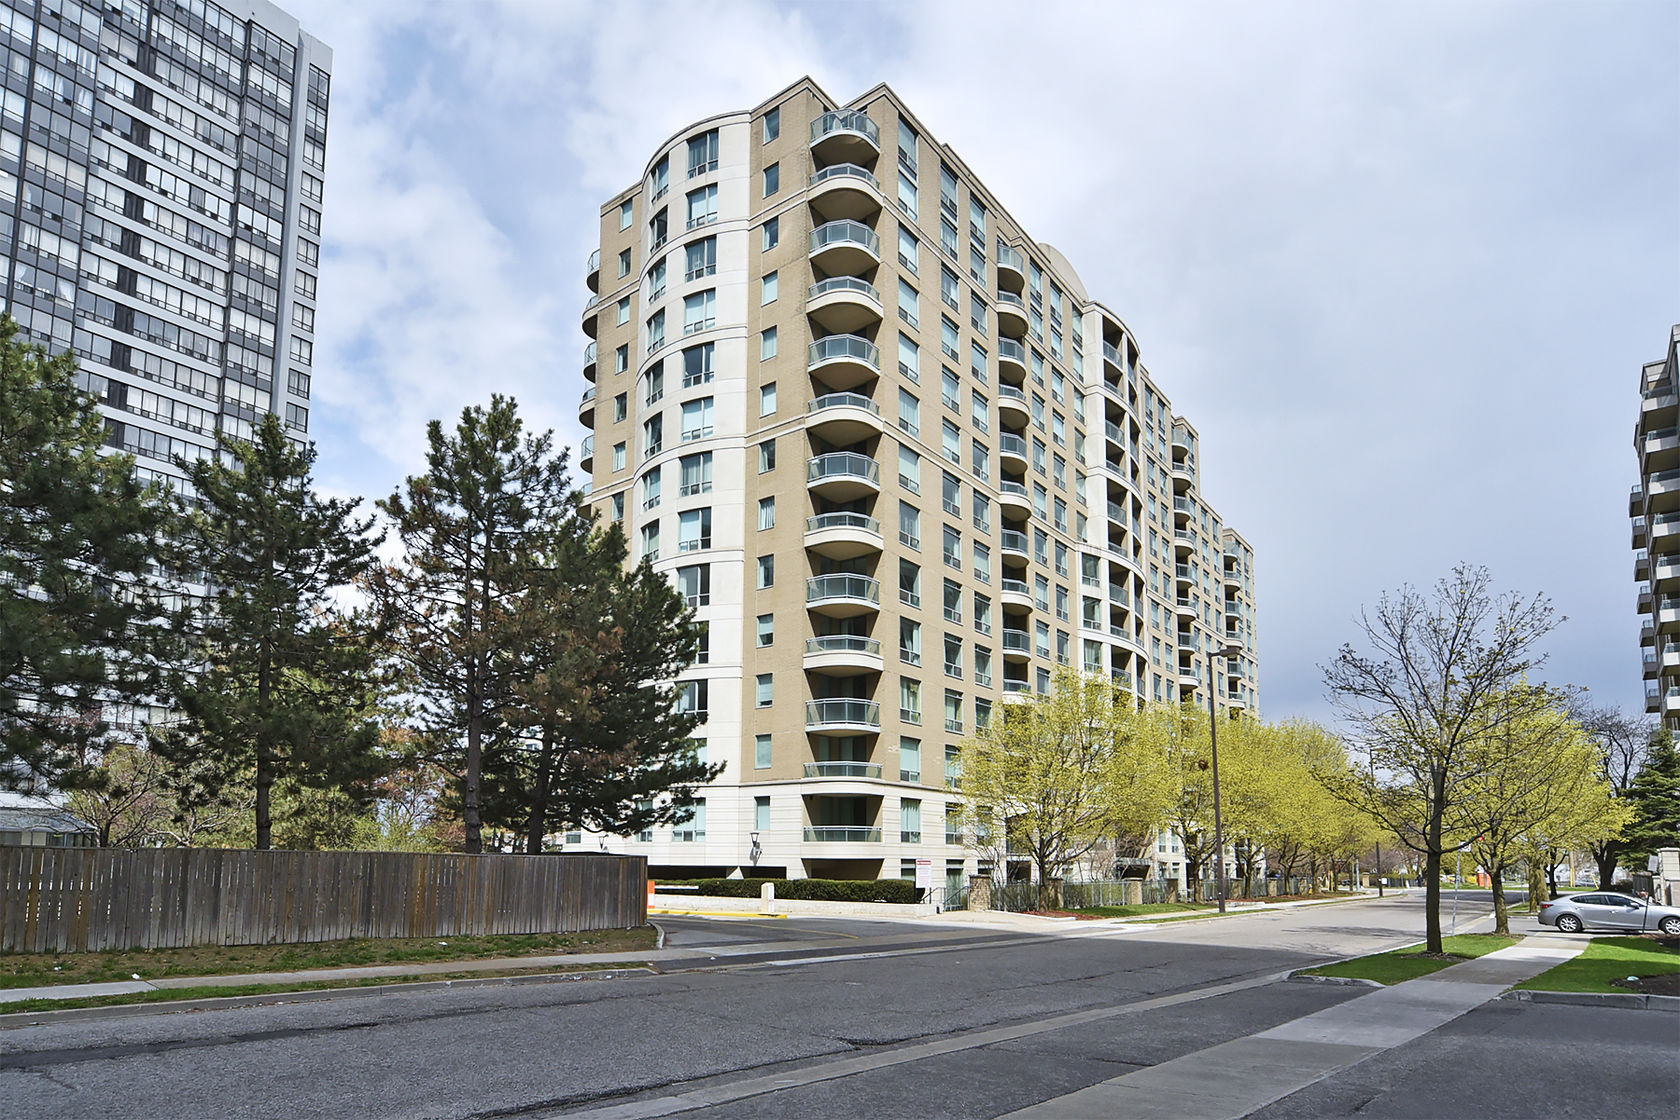 2BR 2WR Condo Apt in Toronto near Yonge and Finch